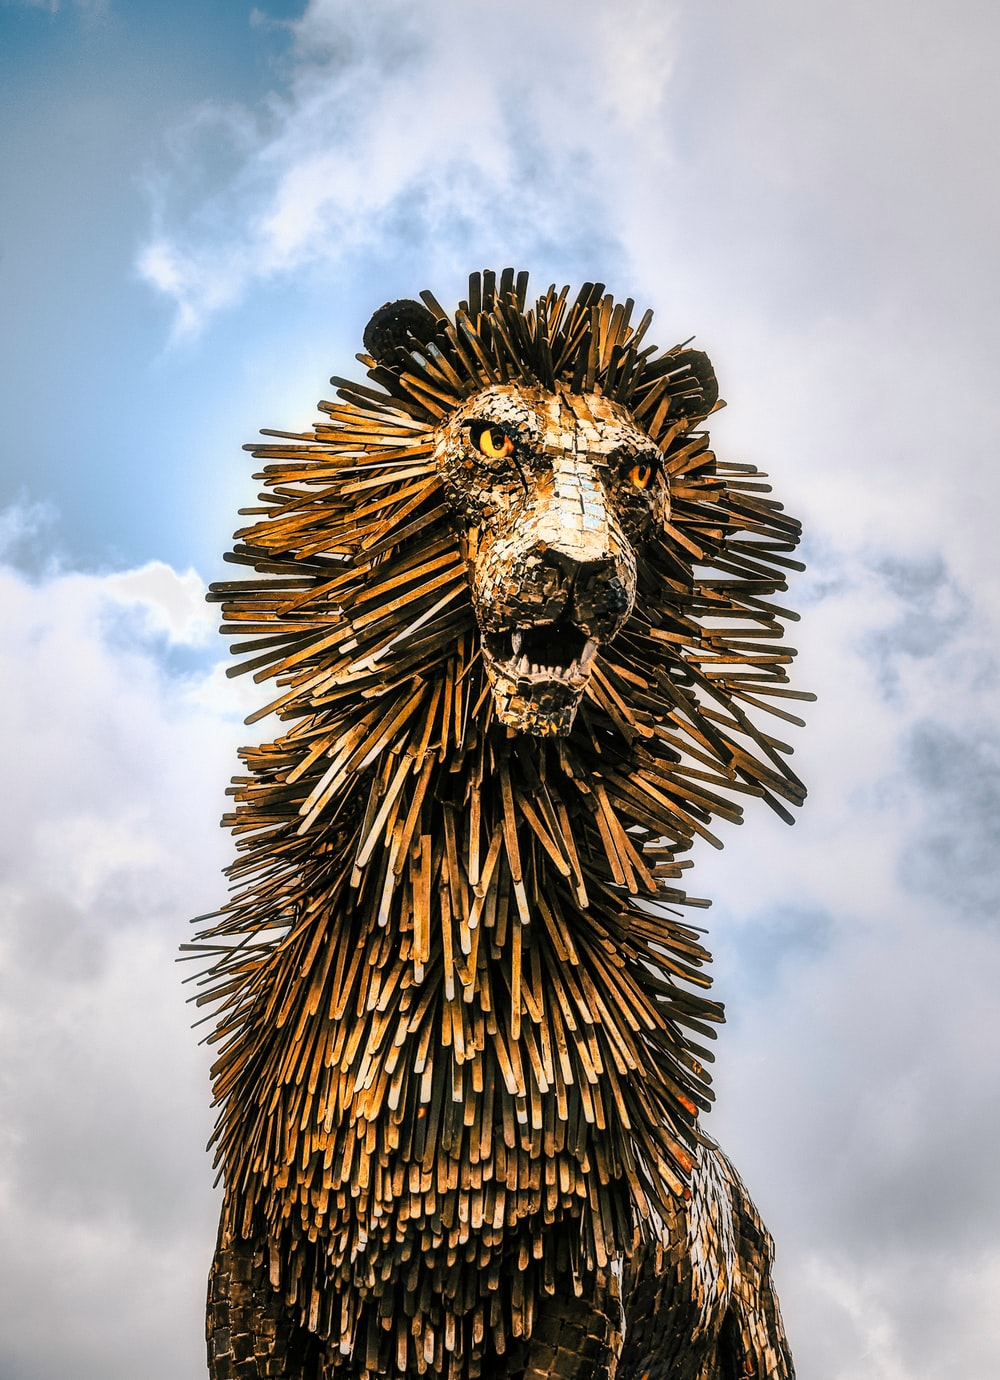 gold and black lion head statue under white clouds and blue sky during daytime